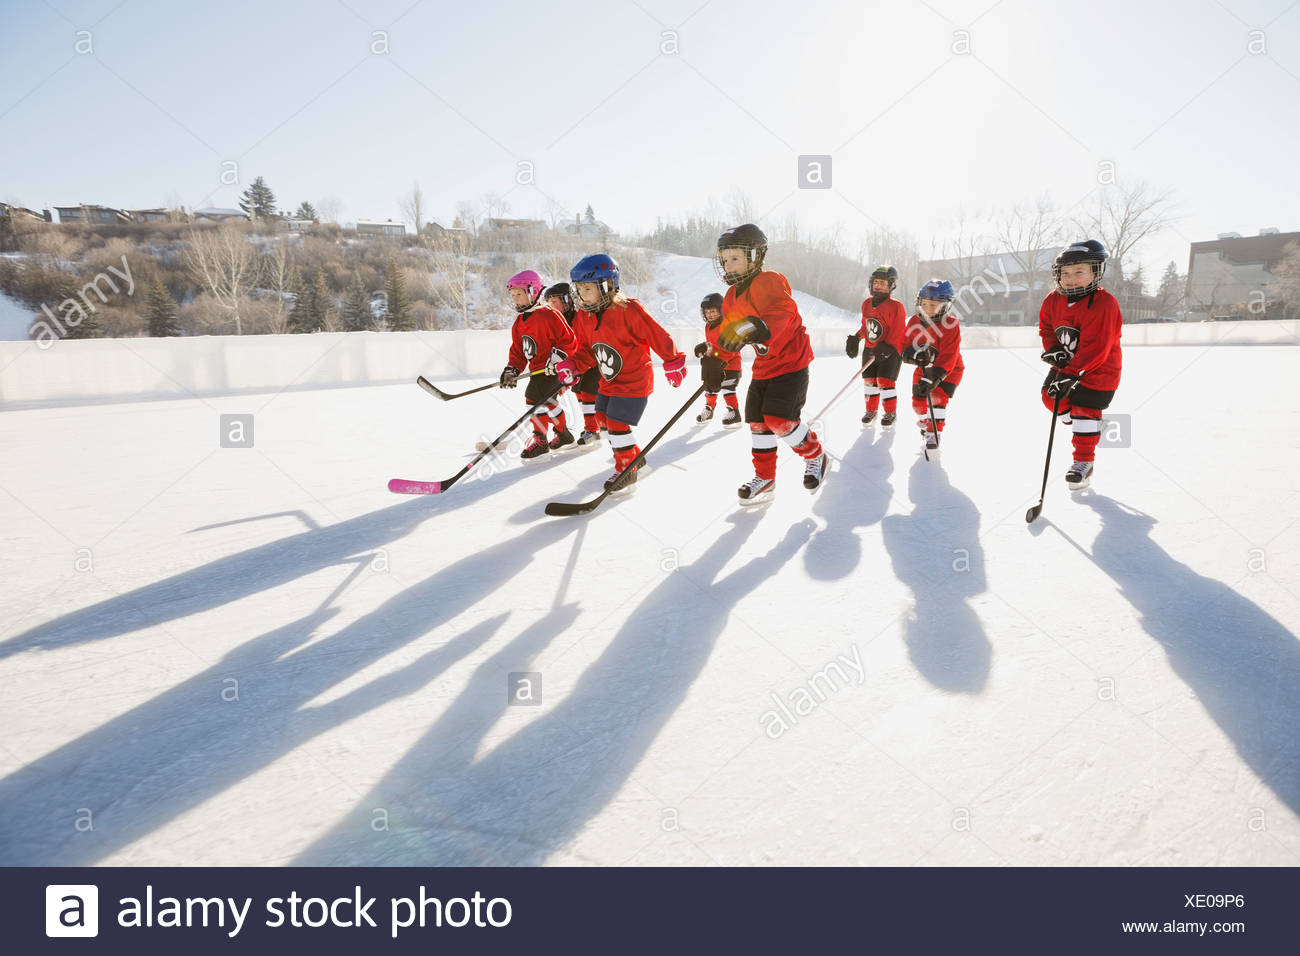 Ice hockey team skating on outdoor rink - Stock Image